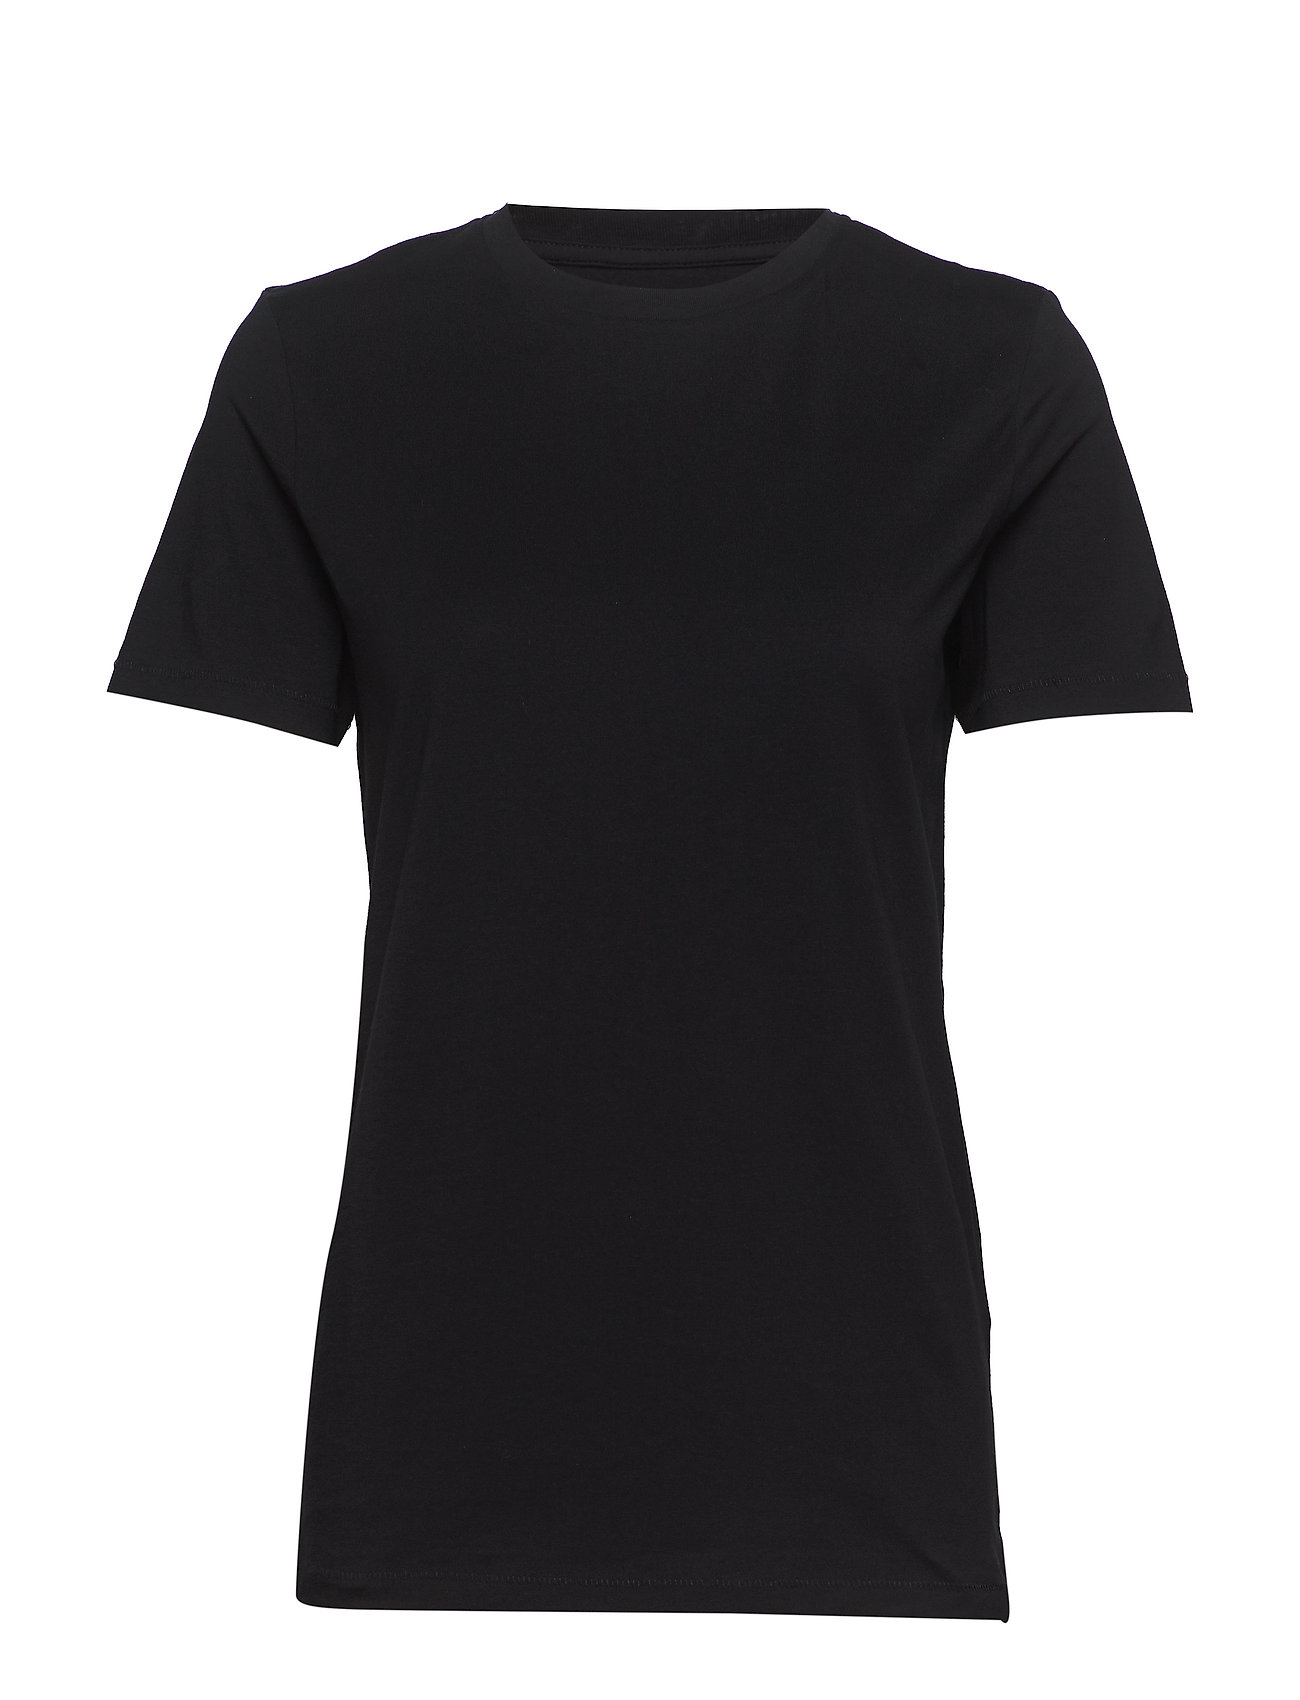 Selected Femme Slfmy Perfect Ss Tee Box Cut Noos T-shirts & Tops Short-sleeved Svart Selected Femme